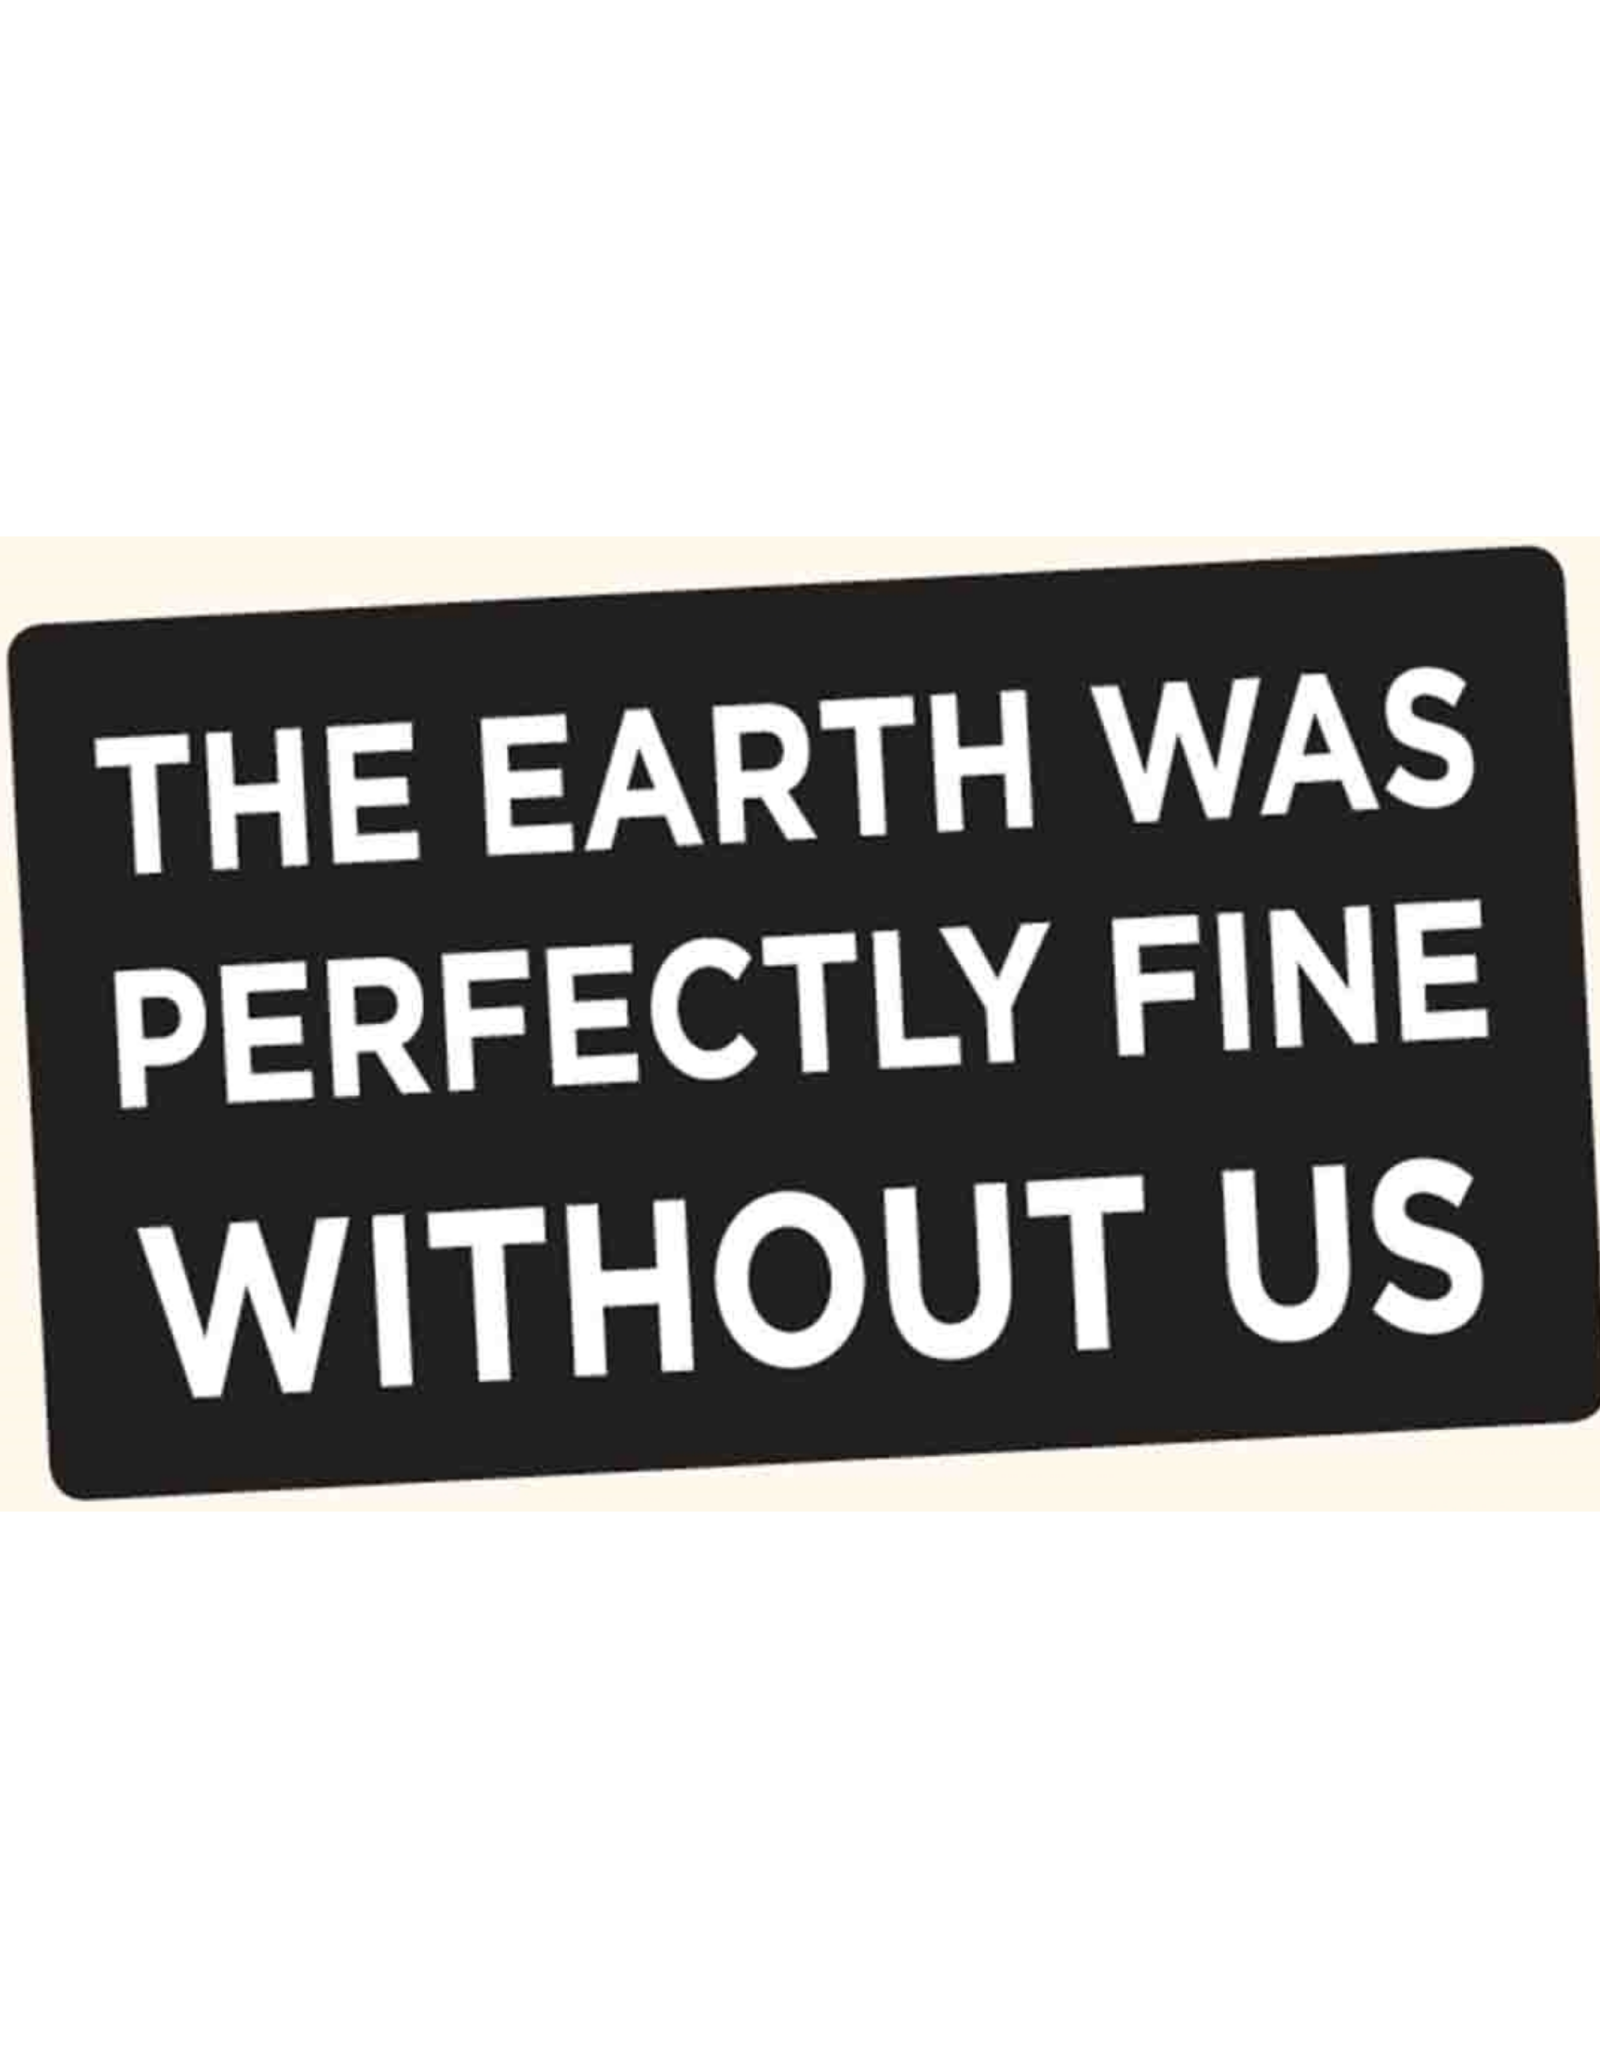 The Earth Was Perfectly Fine Without Us Bumper Sticker